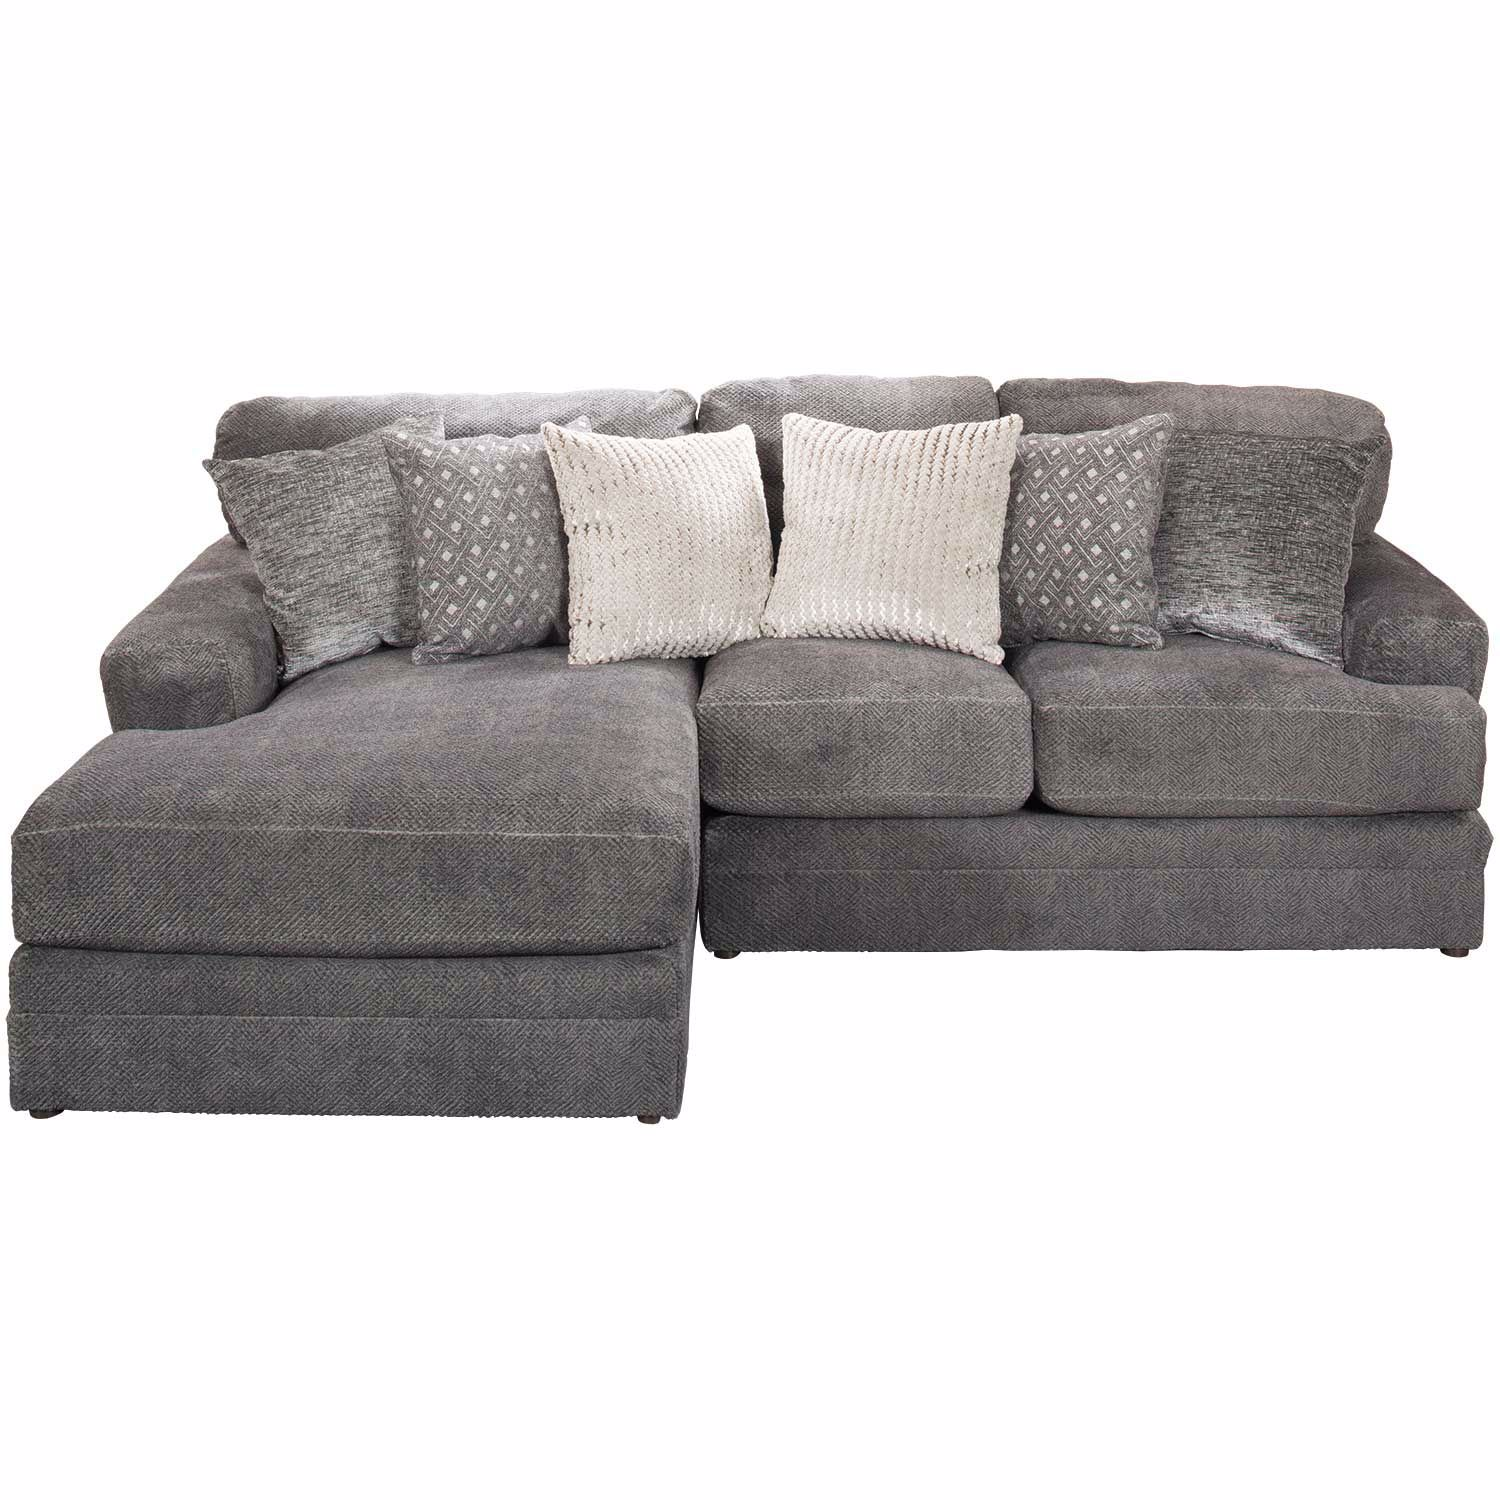 Picture of Mammoth 2 Piece Sectional with LAF Chaise